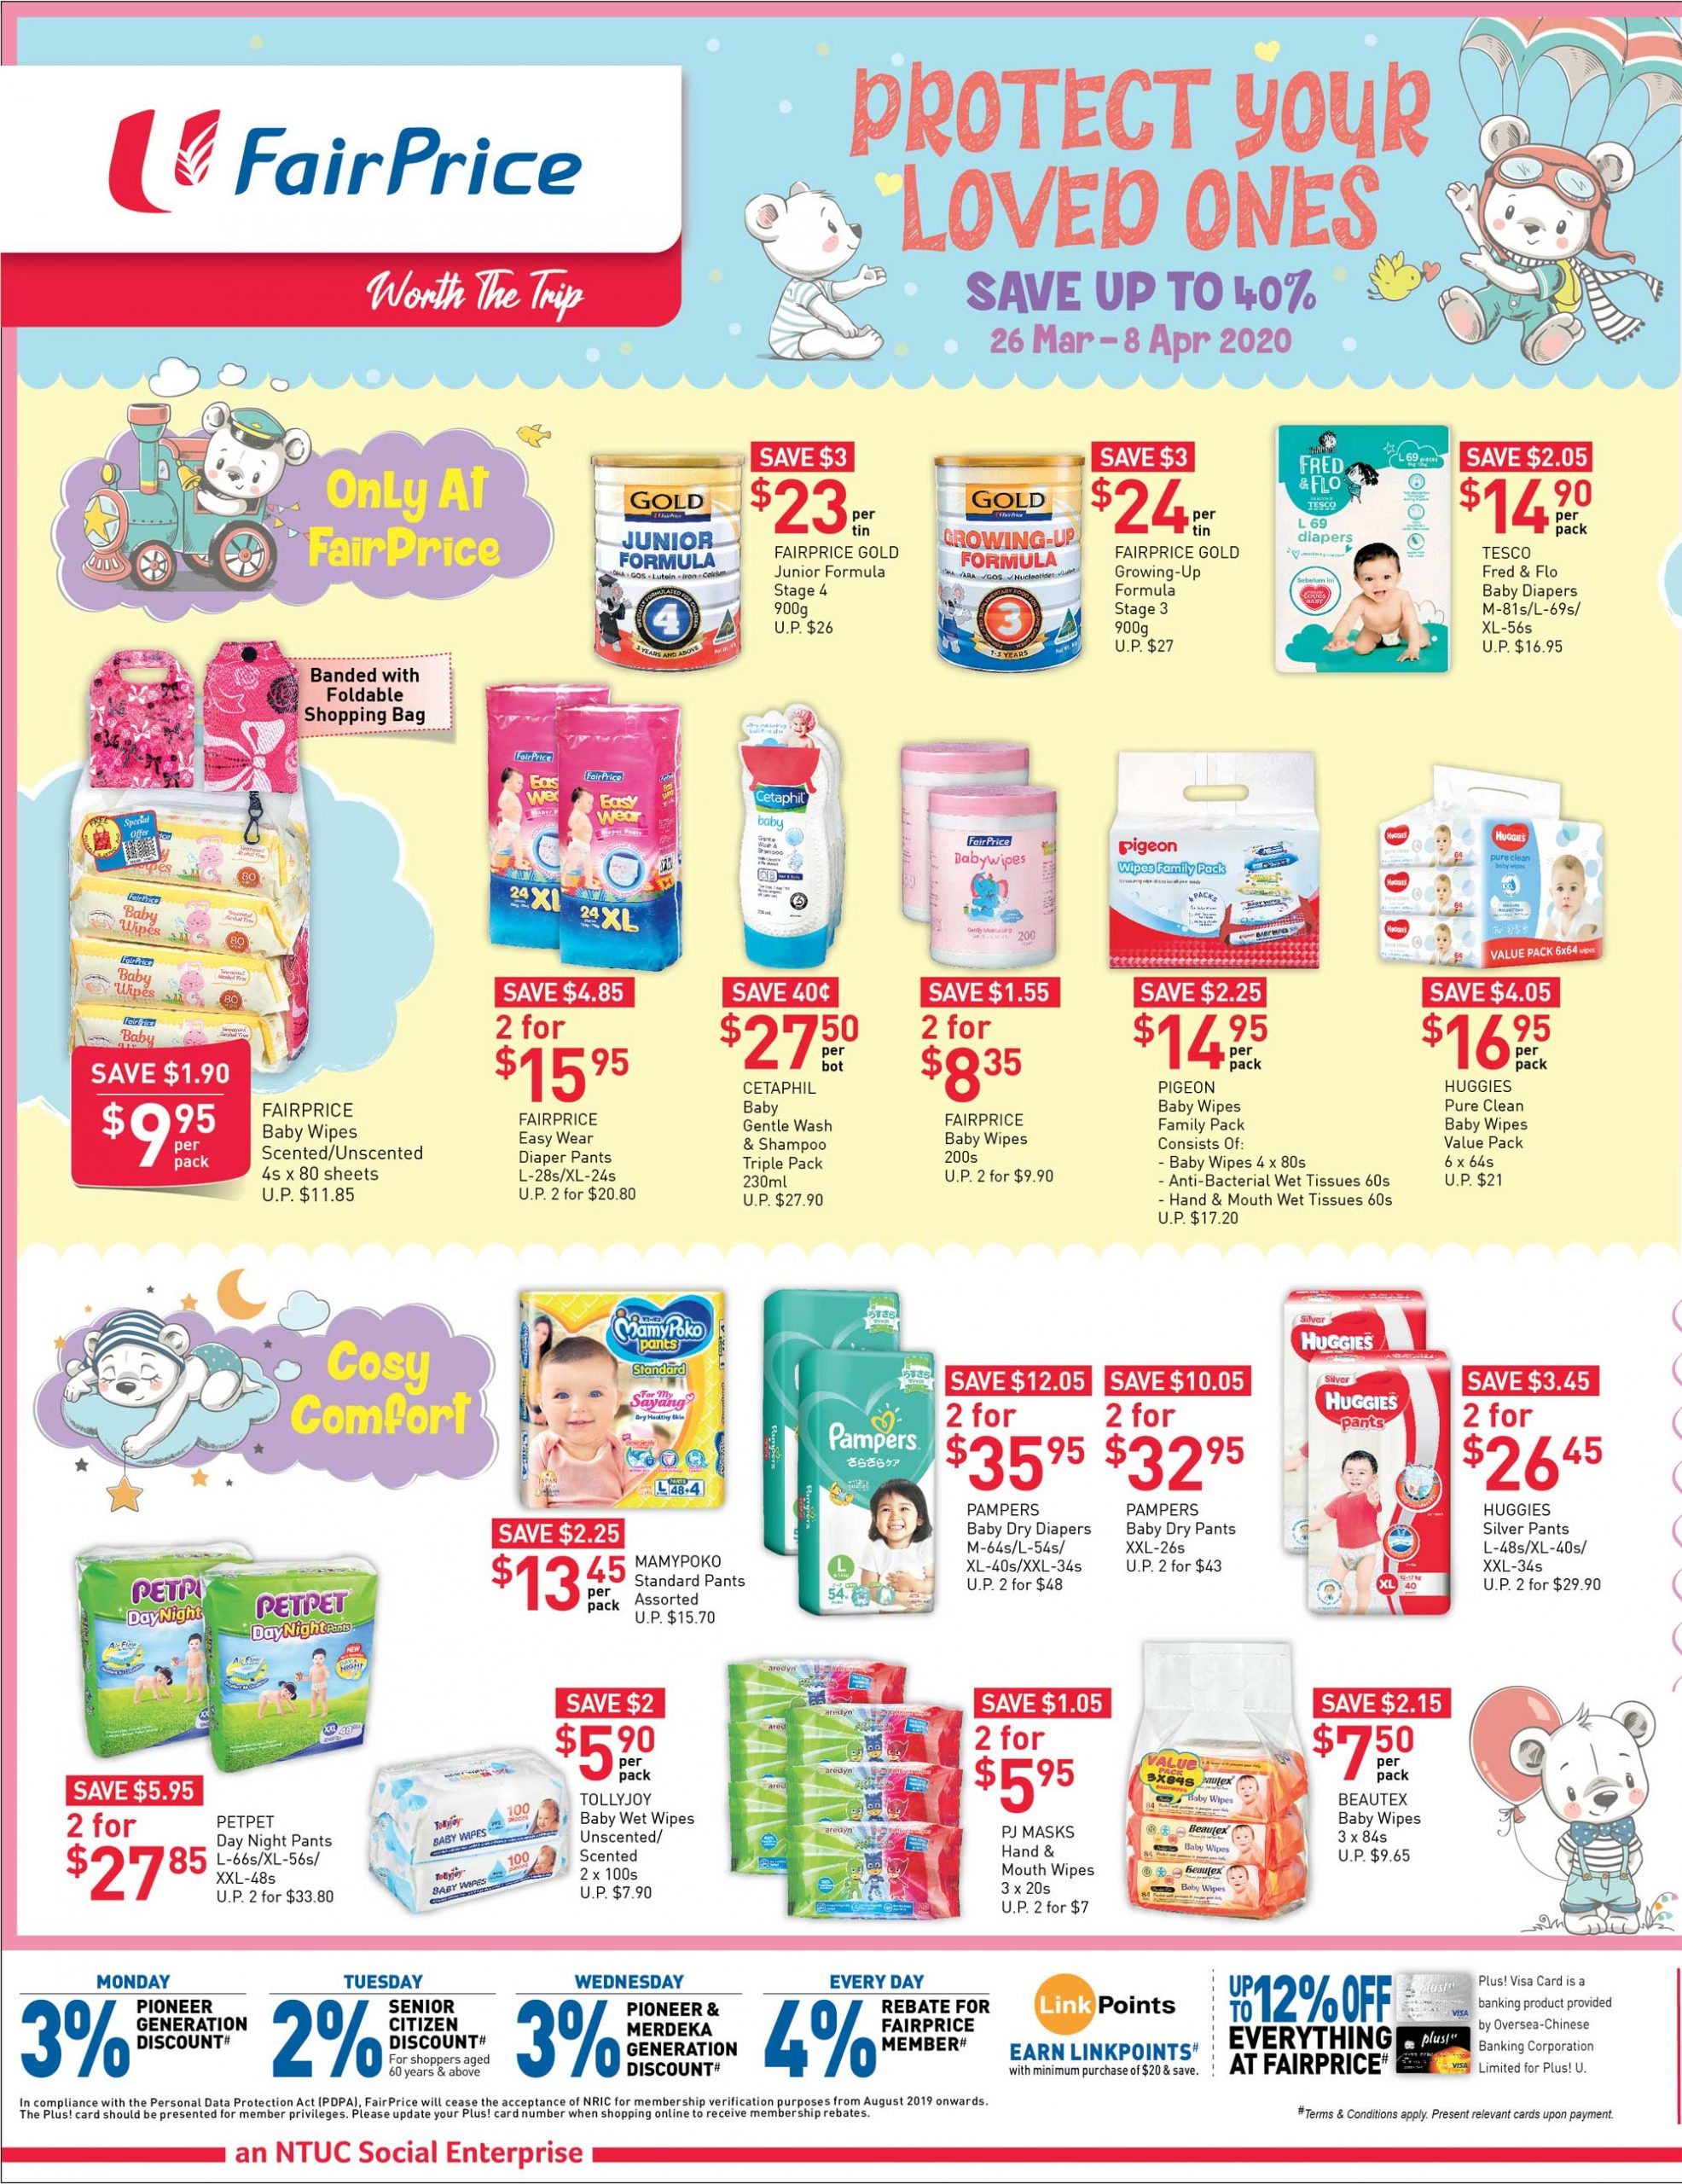 NTUC FairPrice SG Your Weekly Saver Promotion 26 Mar - 1 Apr 2020 | Why Not Deals 5 & Promotions